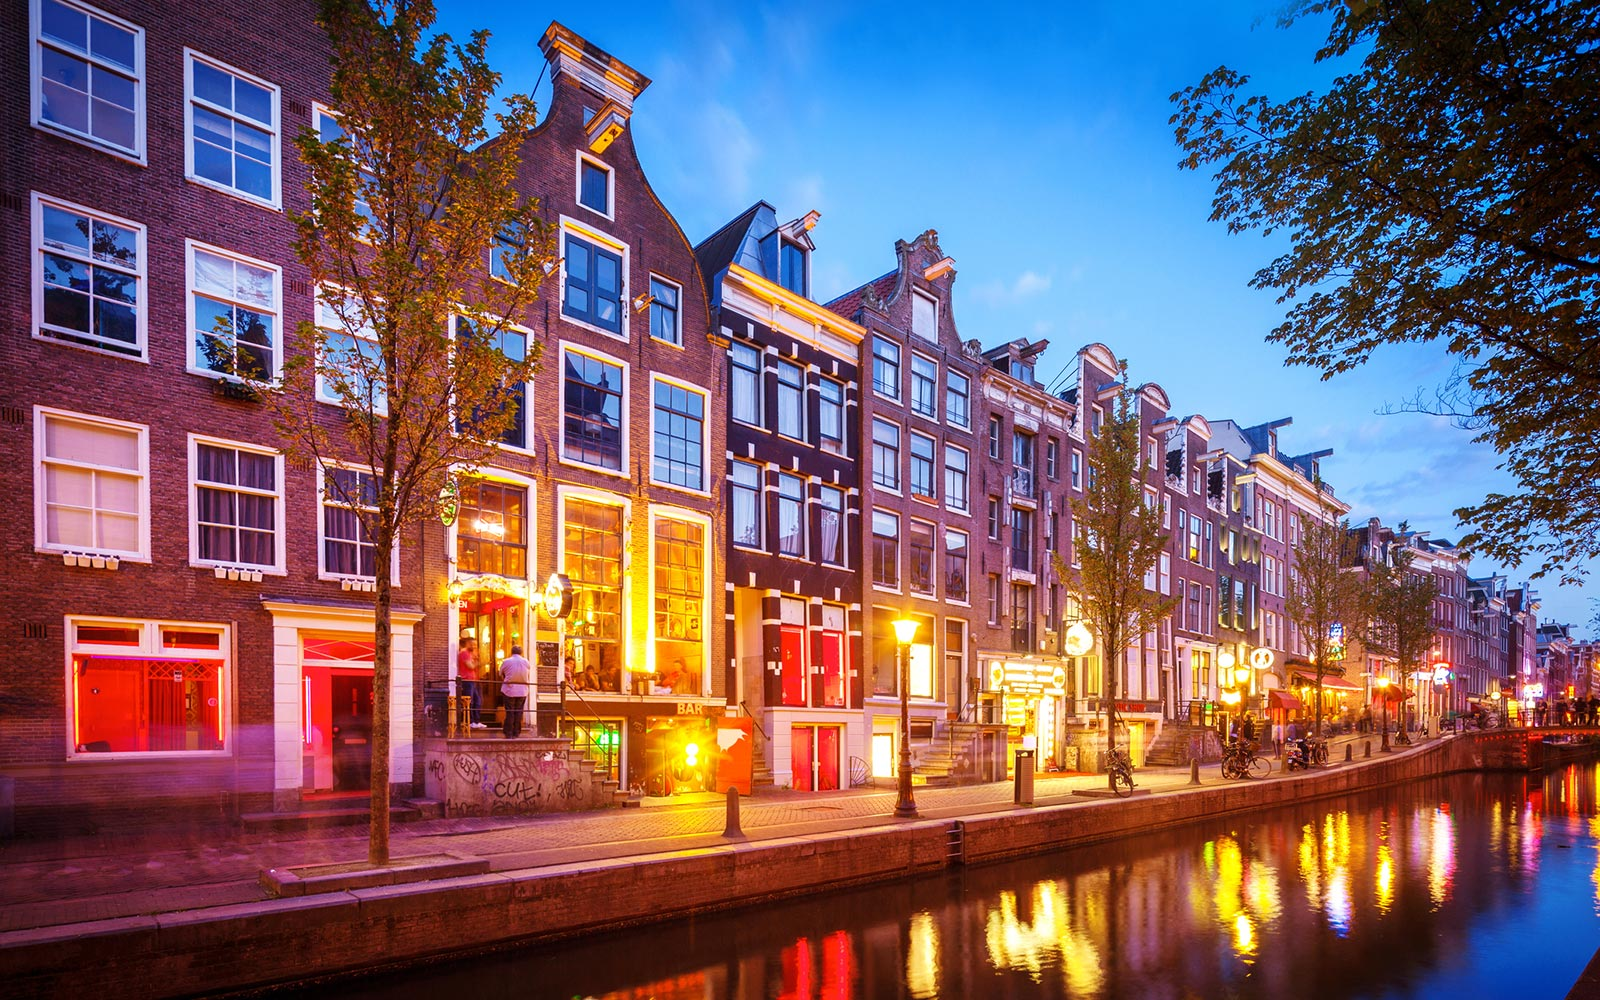 Amsterdam Bans Tours of the Red Light District Starting in 2020